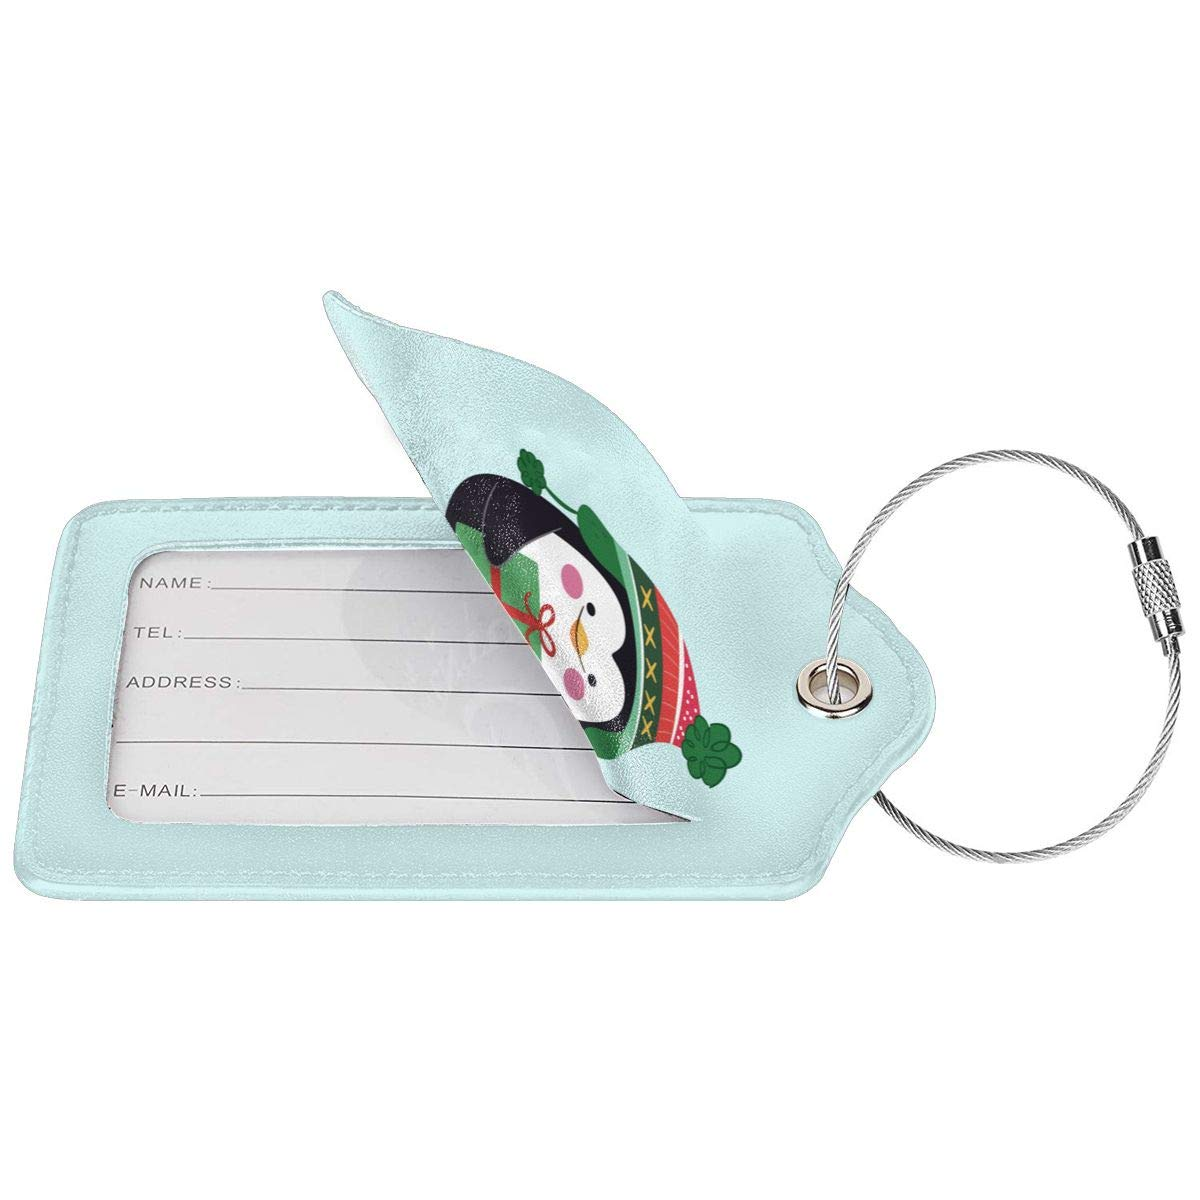 Christmas Penguin Leather Luggage Tag Travel ID Label For Baggage Suitcase